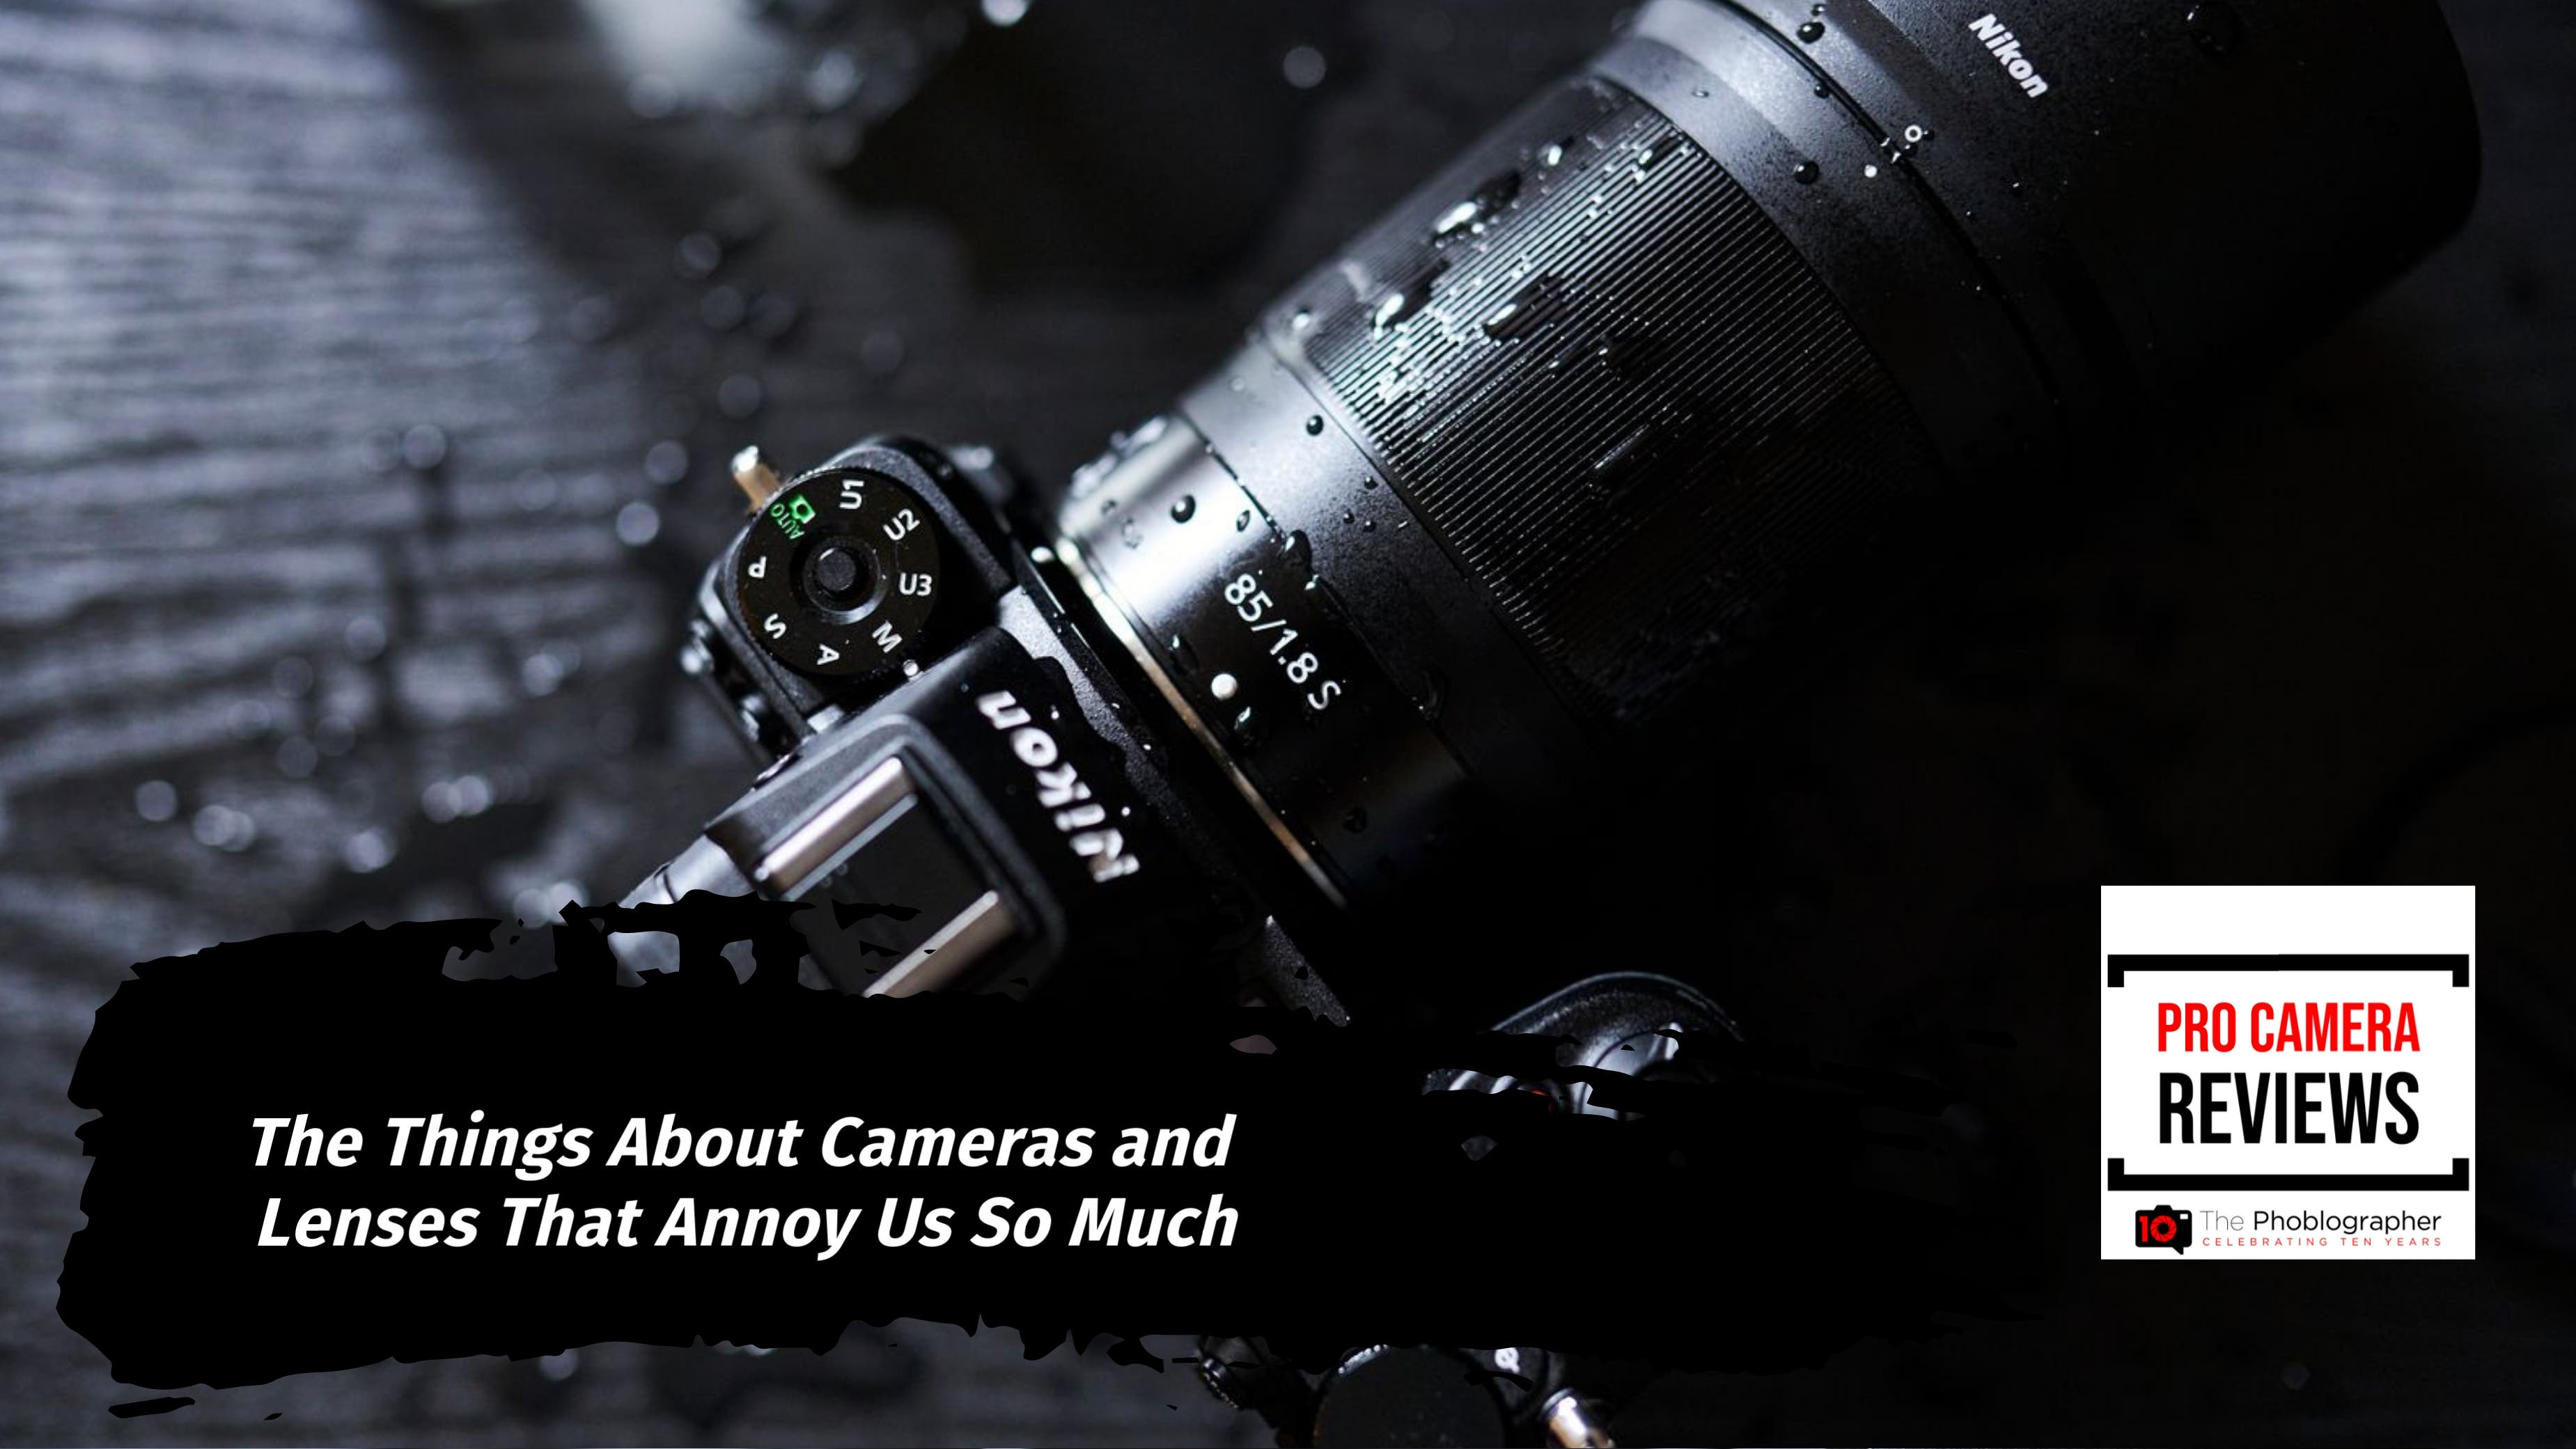 Video: These Things About Cameras and Lenses Really Suck